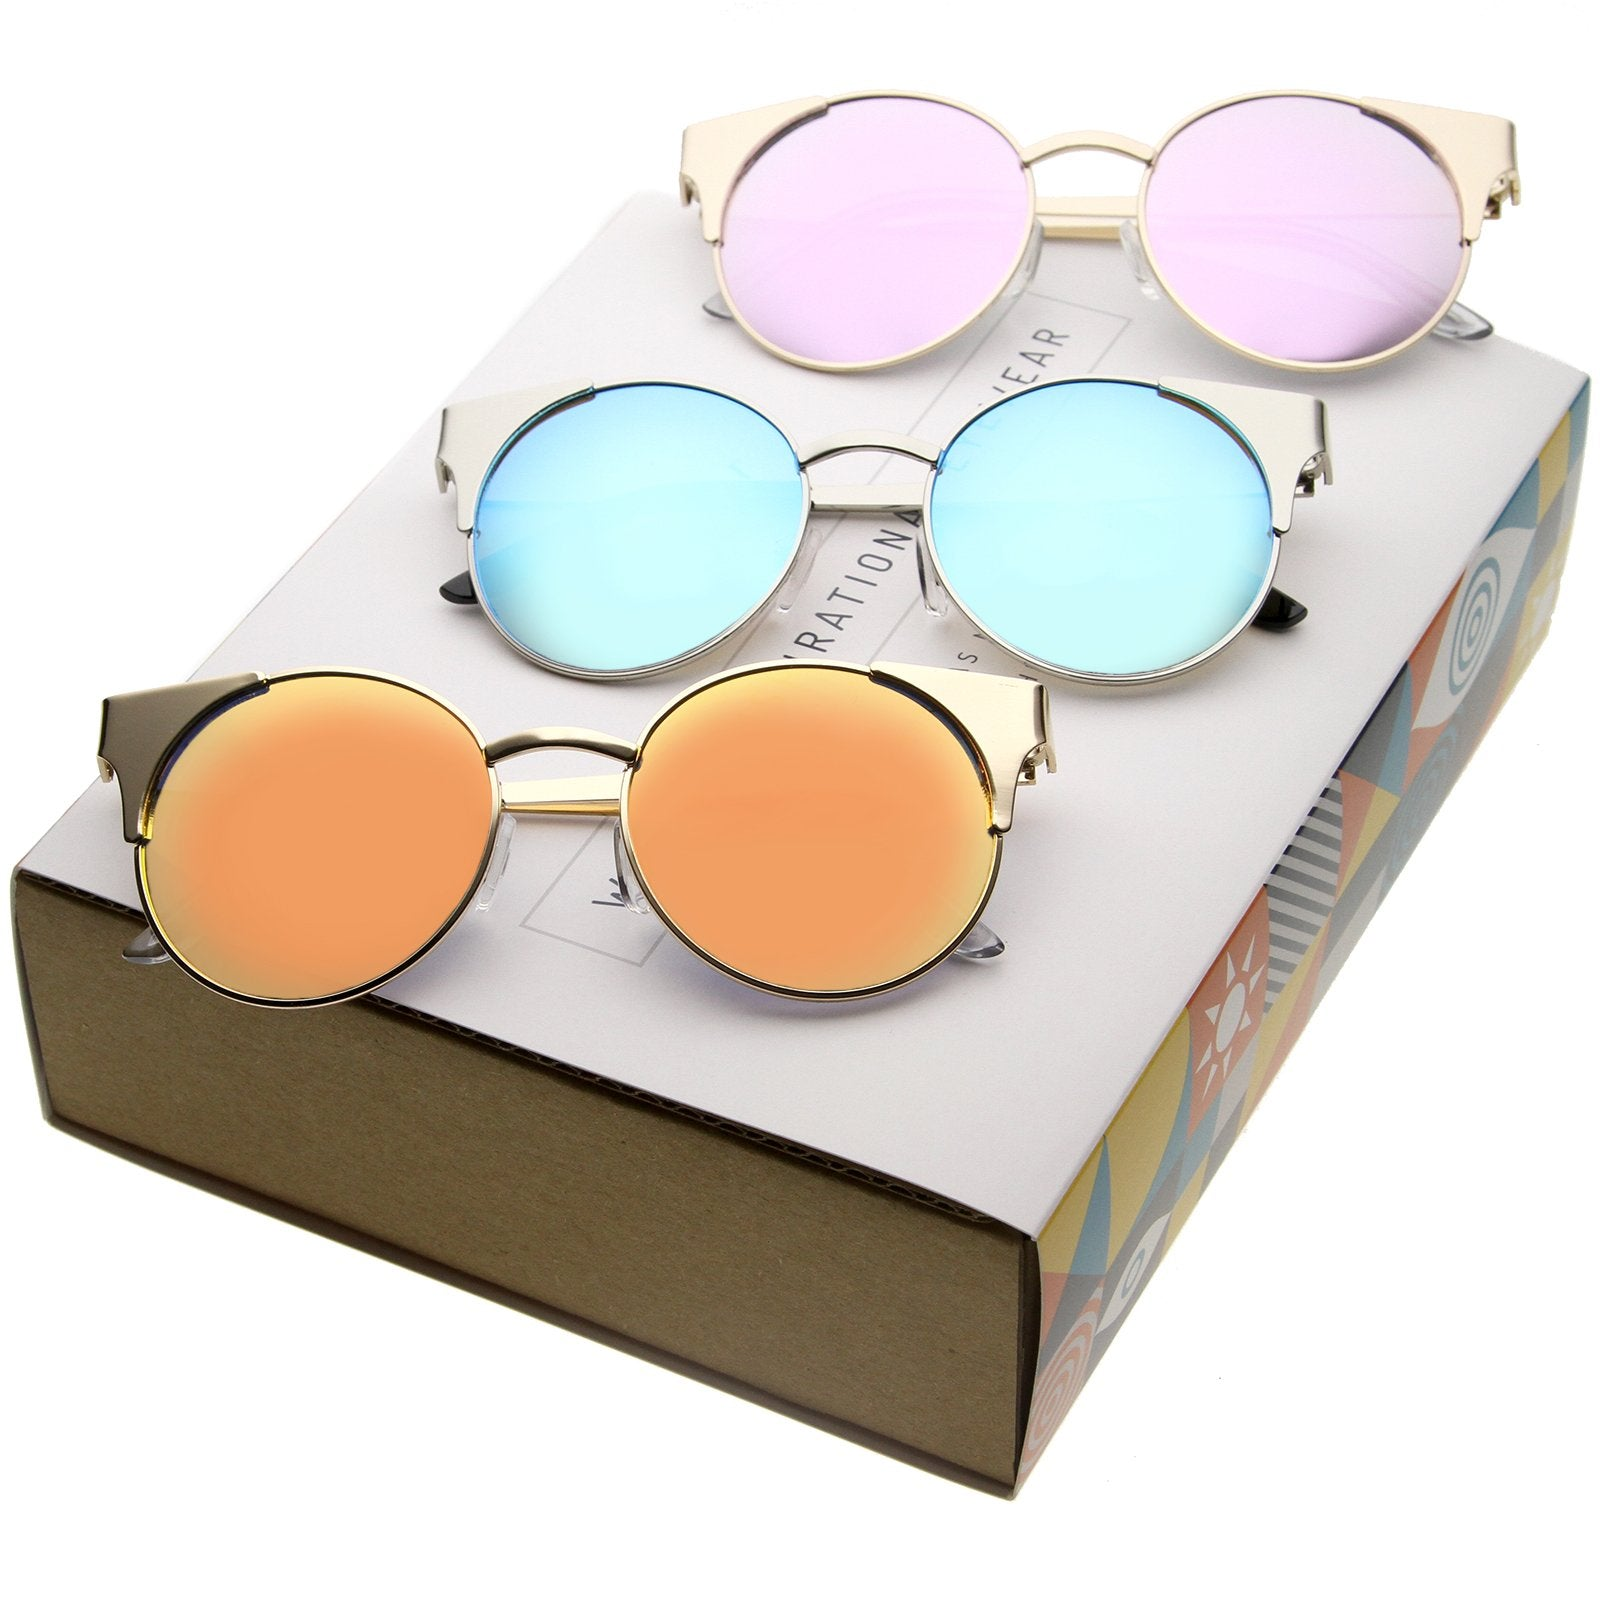 488d27182011 ... Mirrored Flat Lens Cat Eye Sunglasses C359 [Promo Box] · 3 Pack - Promo  Box